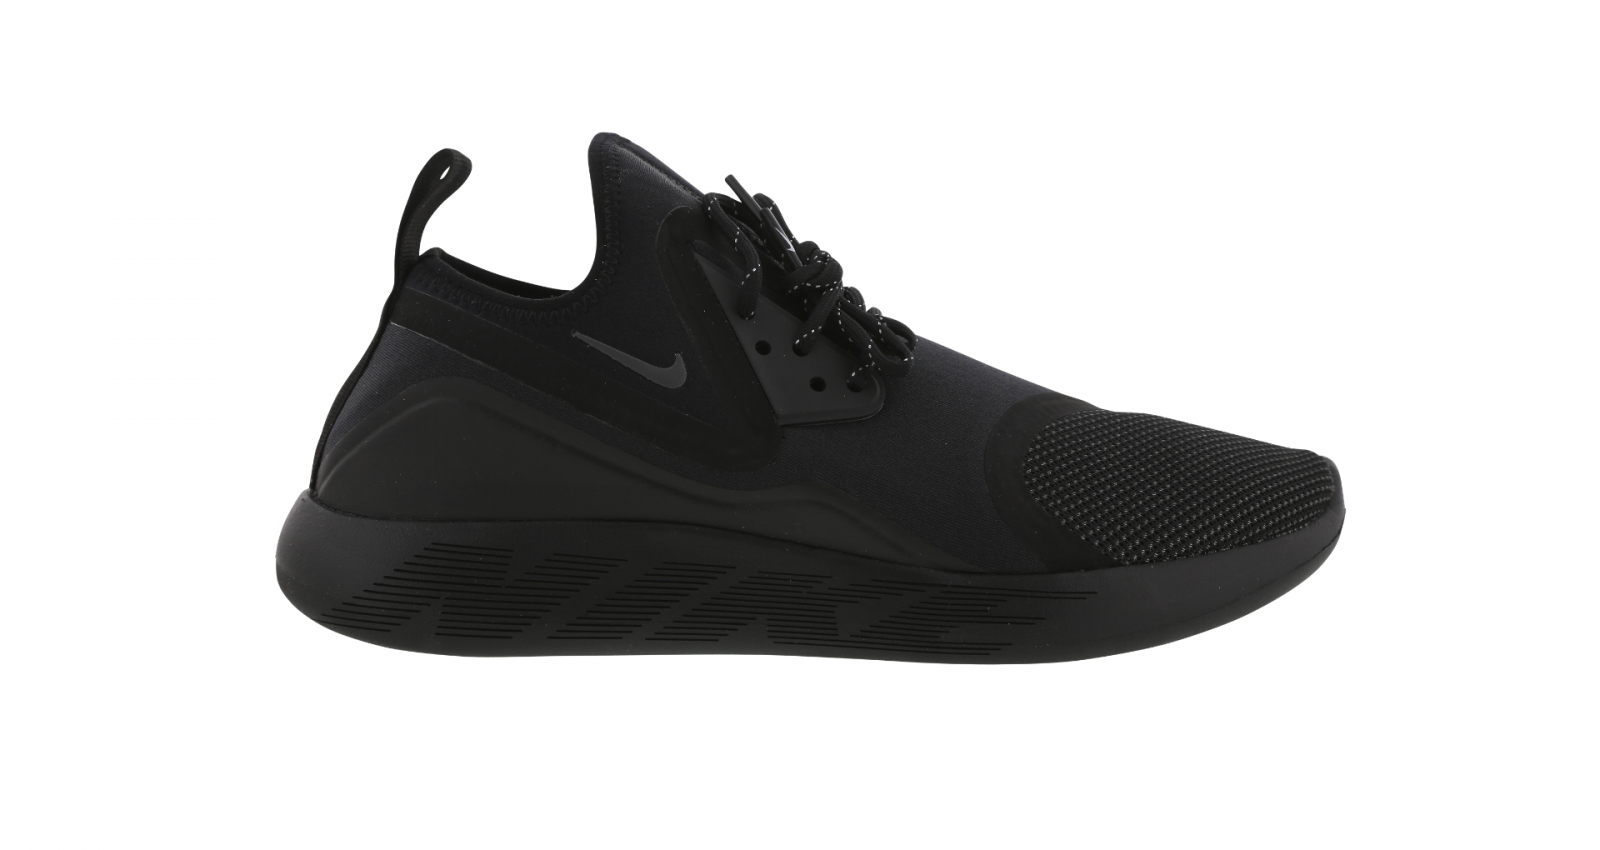 Mens NIKE ESSENTIAL LUNARCHARGE ESSENTIAL NIKE noir Trainers 923619 001 ccc711